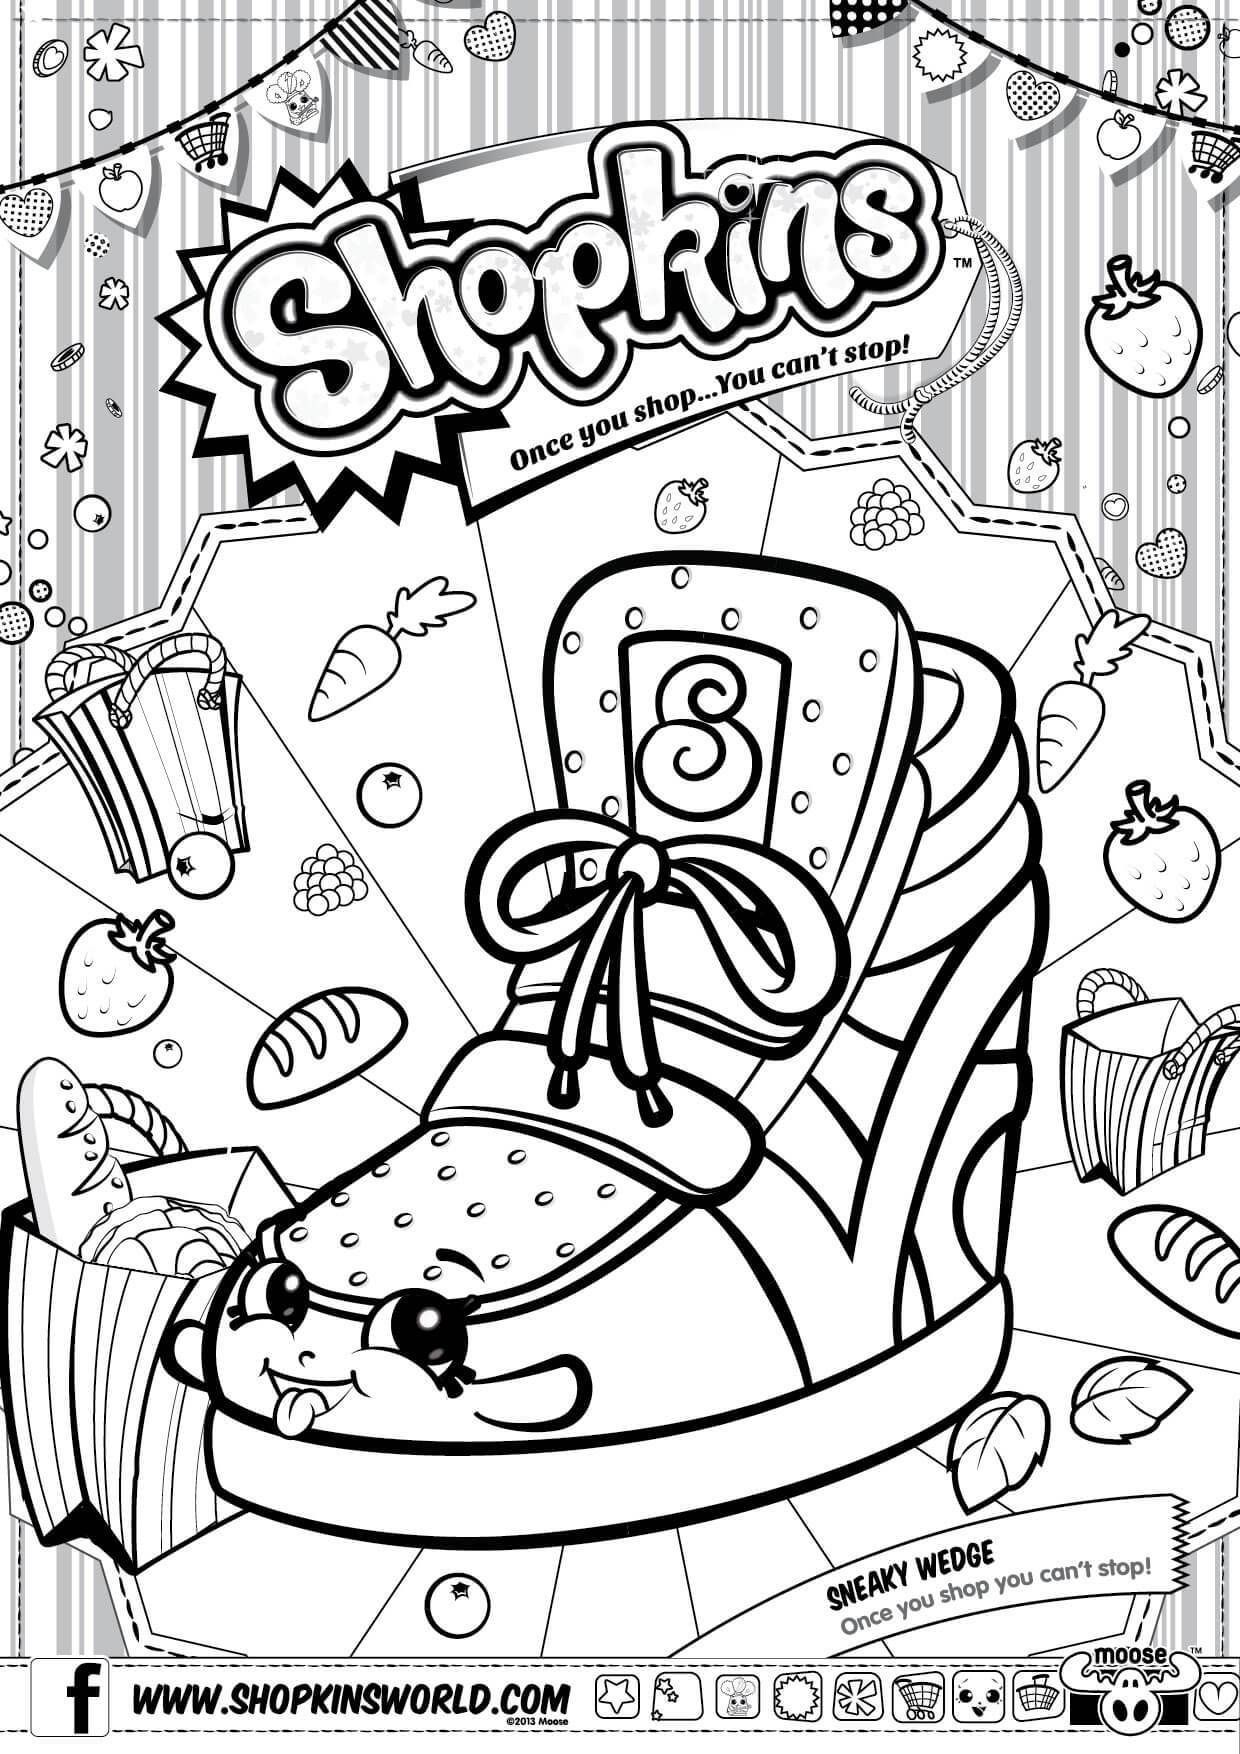 Coloring pages 7th grade - Shopkins Coloring Pages Season 2 Sneaky Wedge